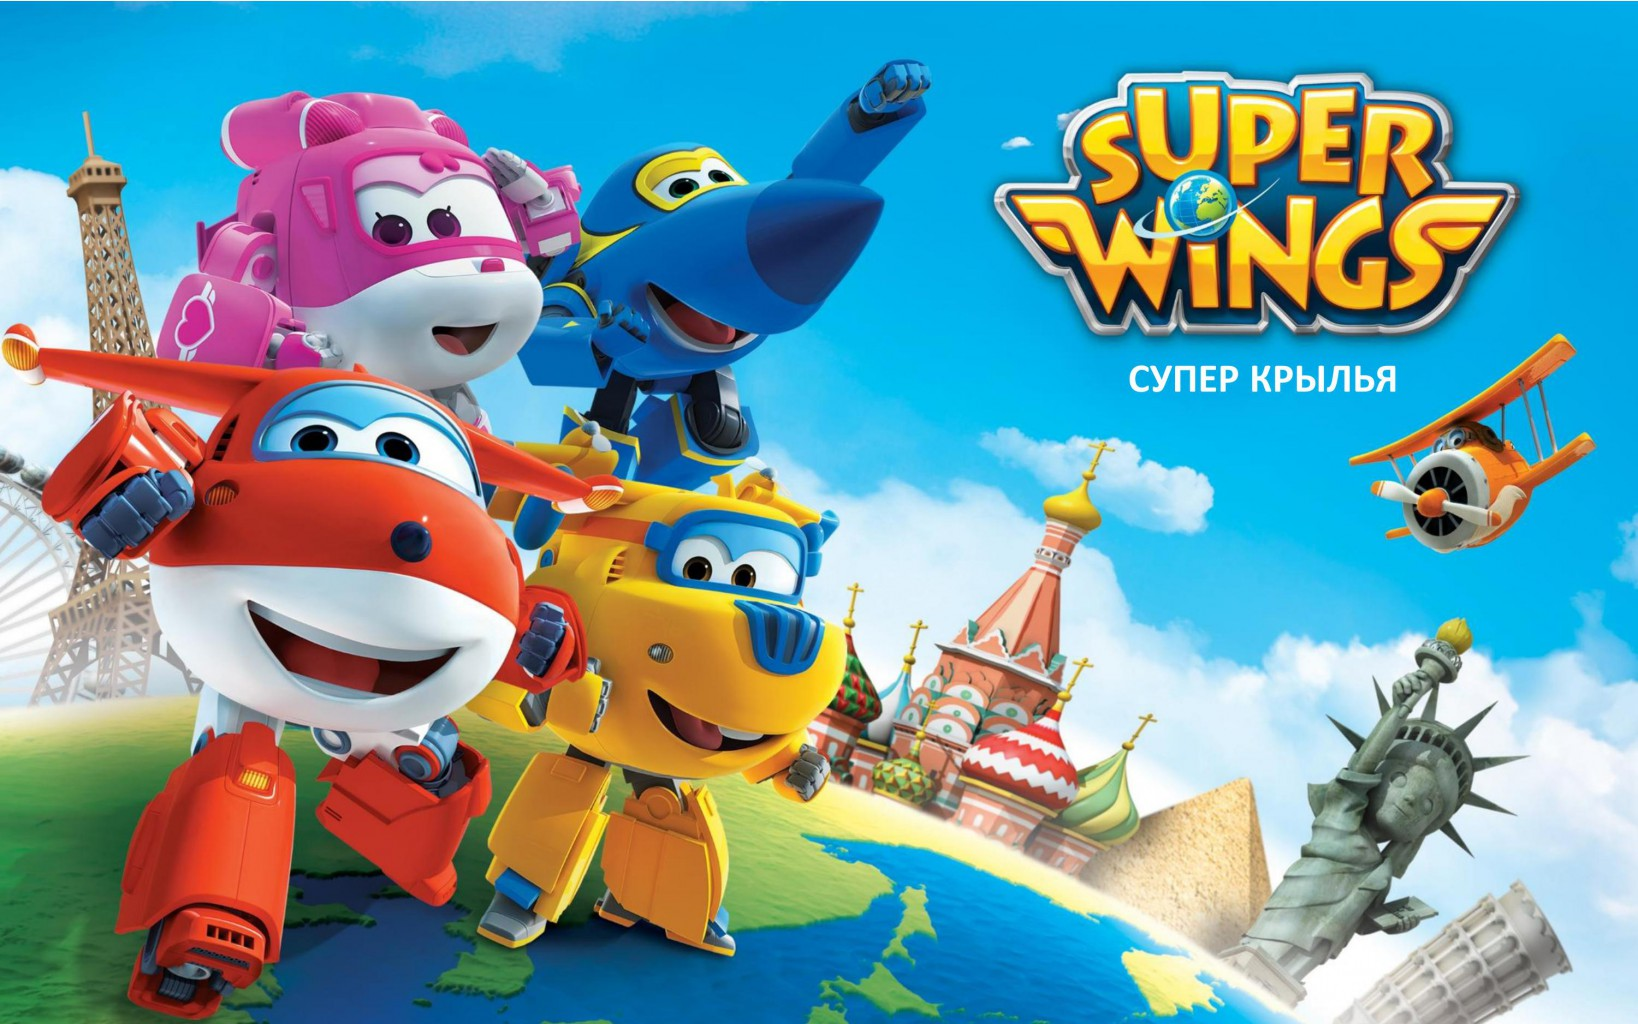 ����� ������ �� �����, �������� �������� �� 19 �������. ���������! Super Wings (����� ������) ��������! (��-�� ����� �����) ������������, ������� ������, �������������!